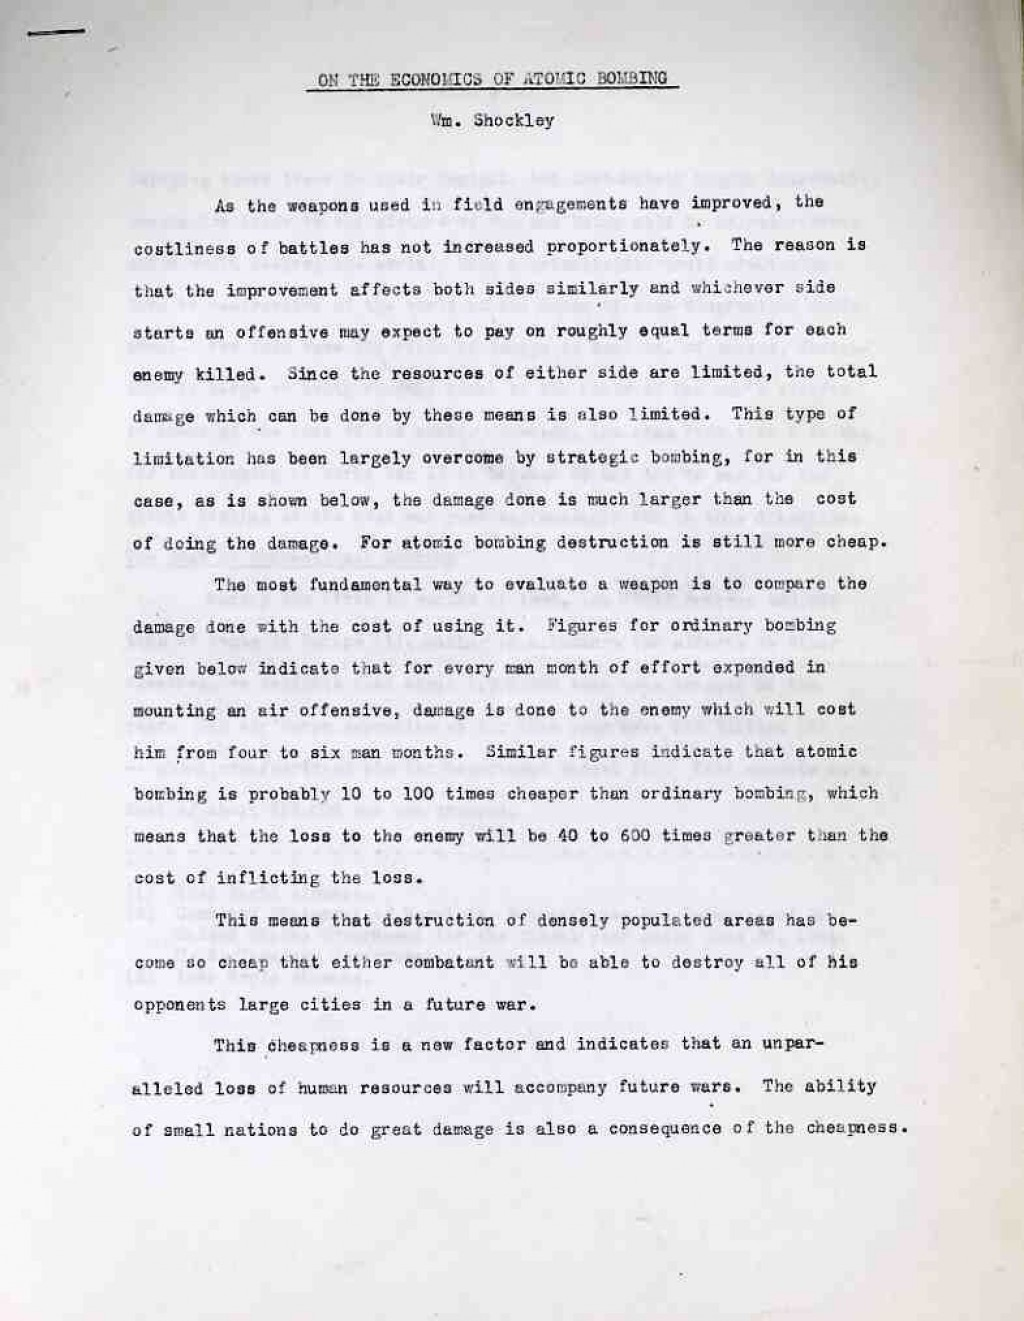 012 Atomic Bomb Essay Example Shocking Topics Questions Prompts Large